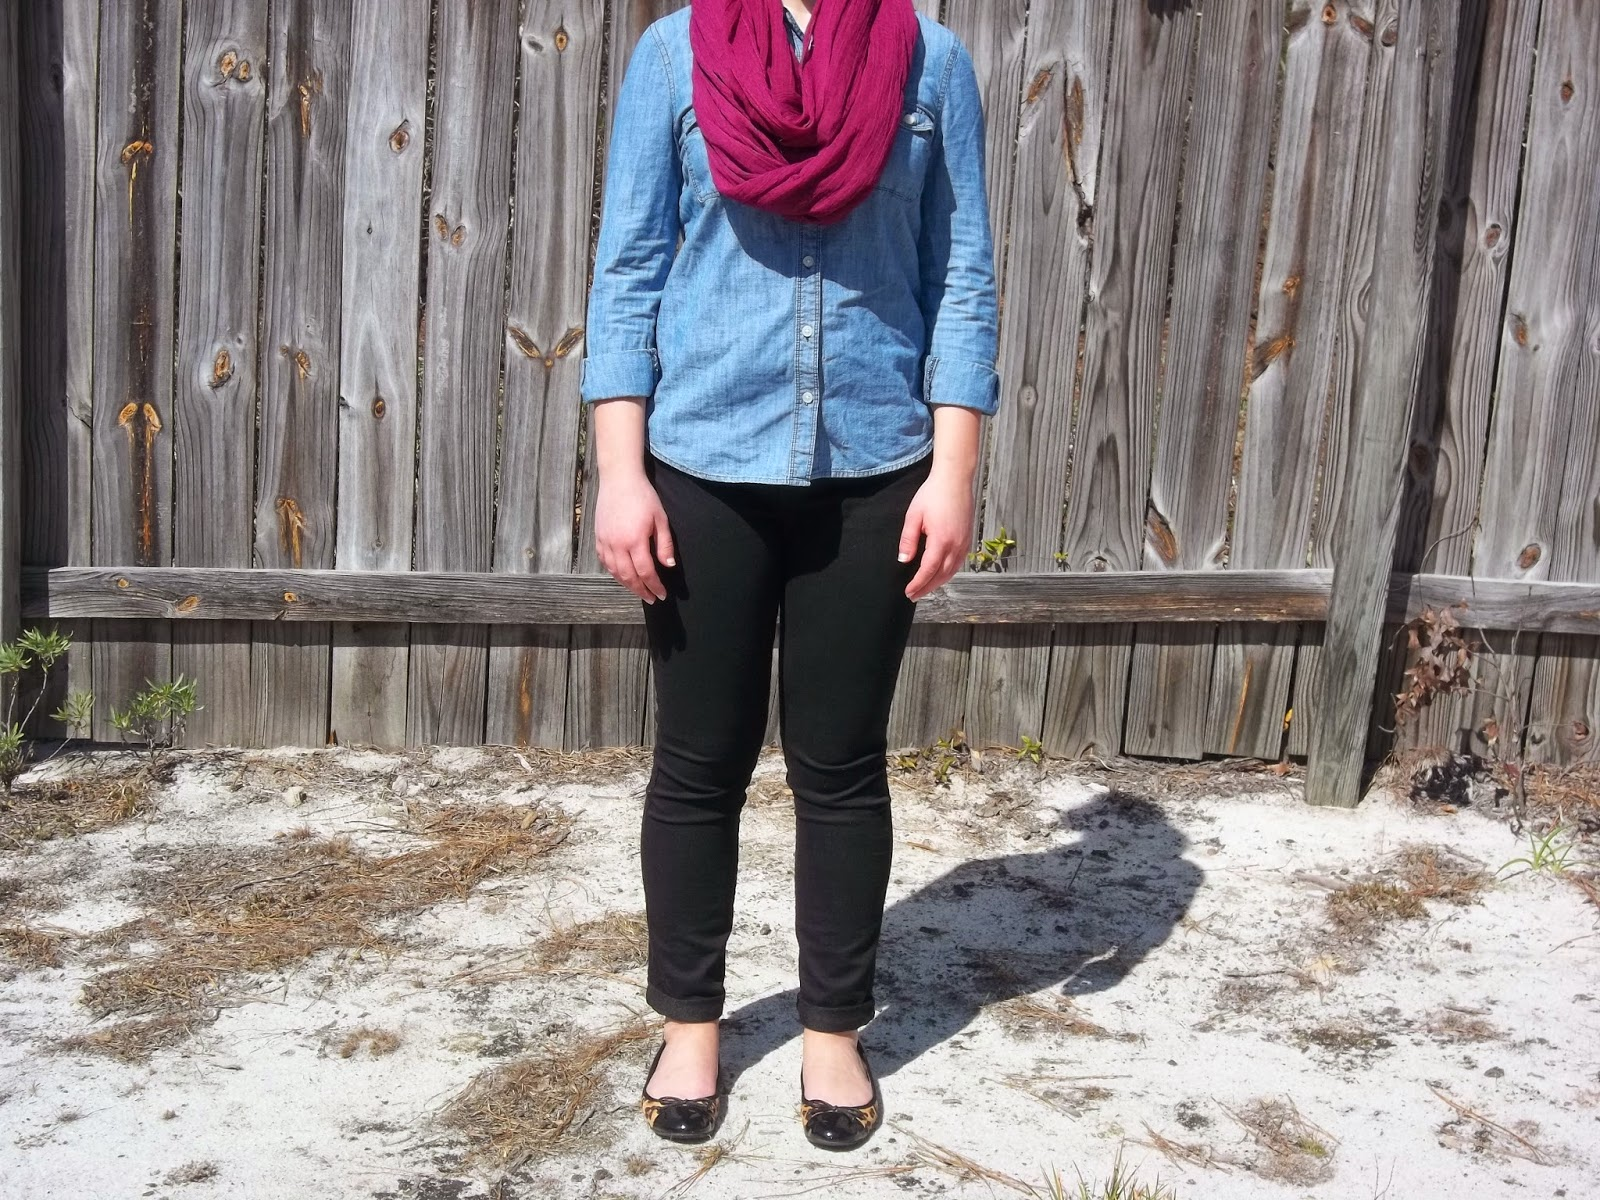 No-Fail Outfit Formulas. Chambray shirt, black skinny jeans, infinity scarf, leopard flats. http://mybowsandclothes.blogspot.com/. #outfitinspiration #outfitpost #styleblogger #sblogger #ontheblog #chambray #infinityscarf #leopardflats #skinnyjeans